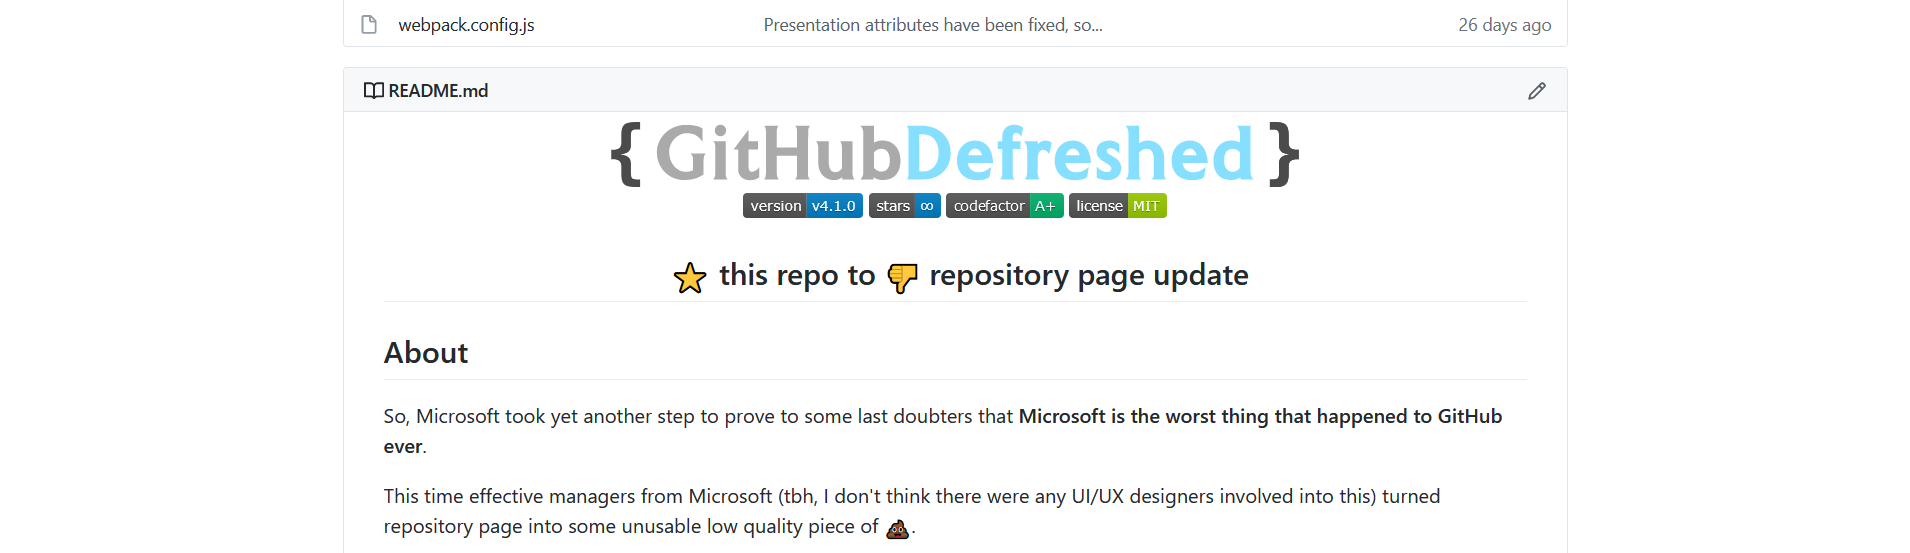 Preview of GitHub Defreshed: Repository page